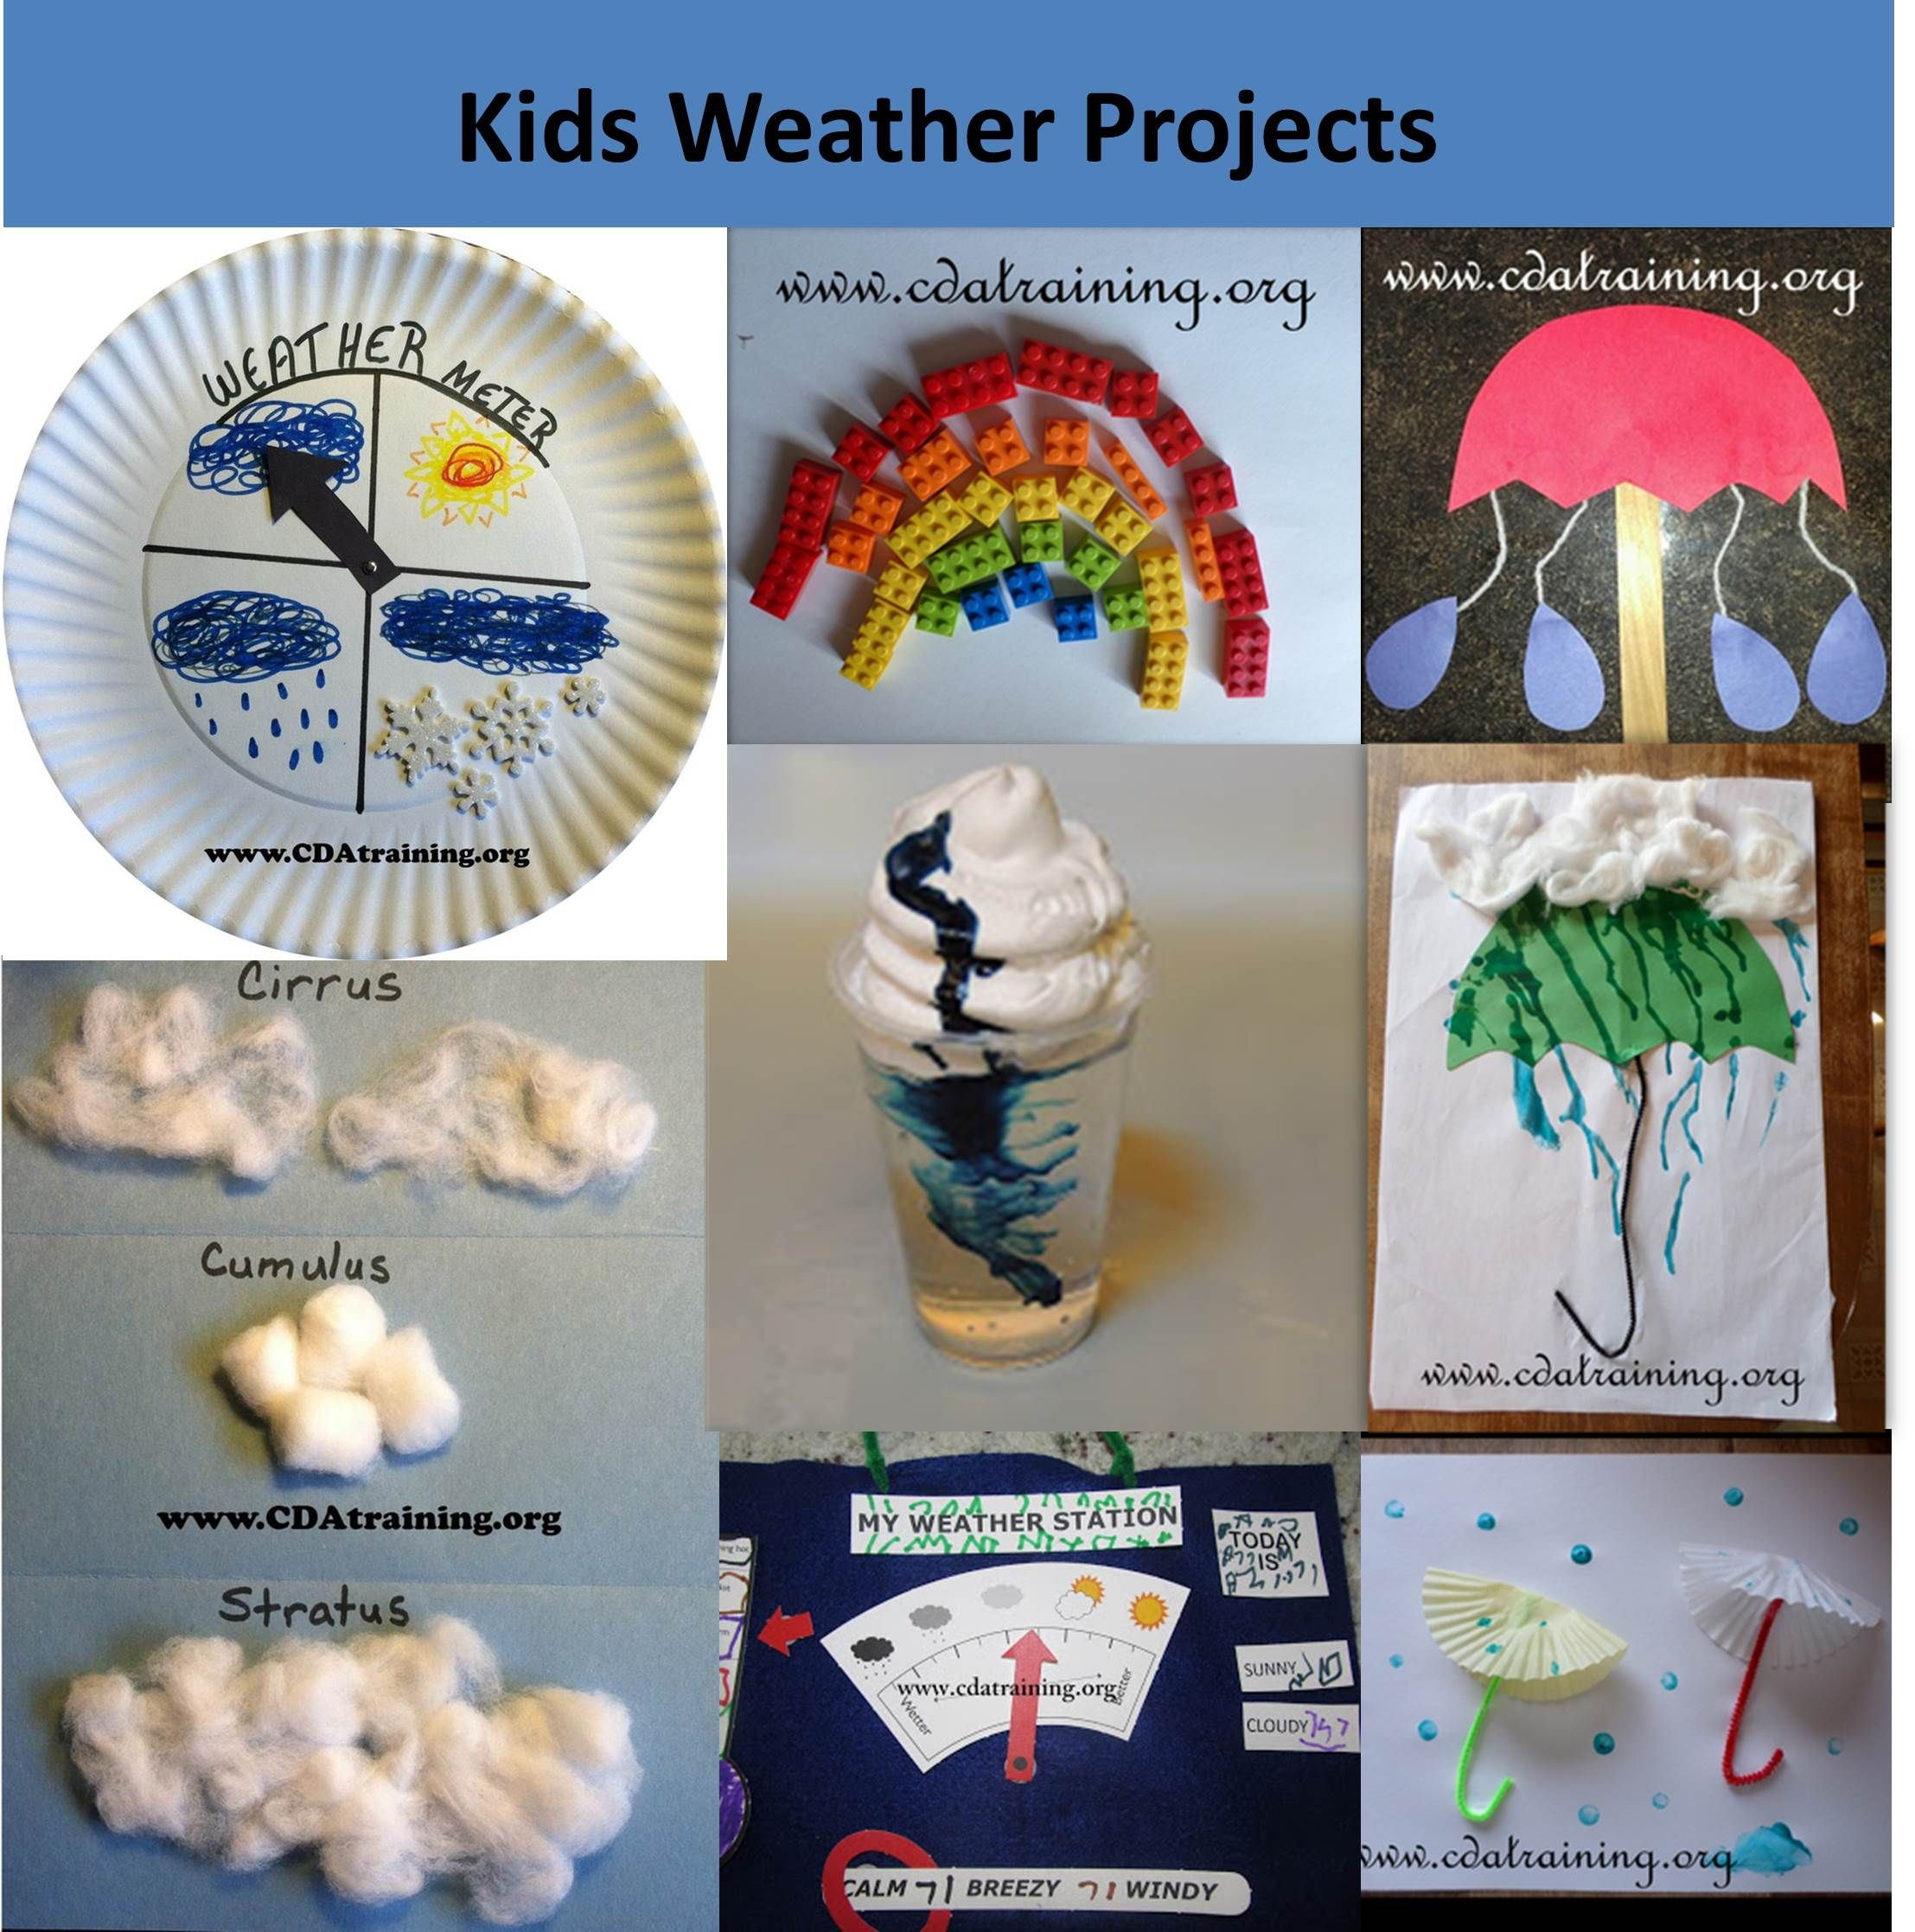 Kids Weather Projects